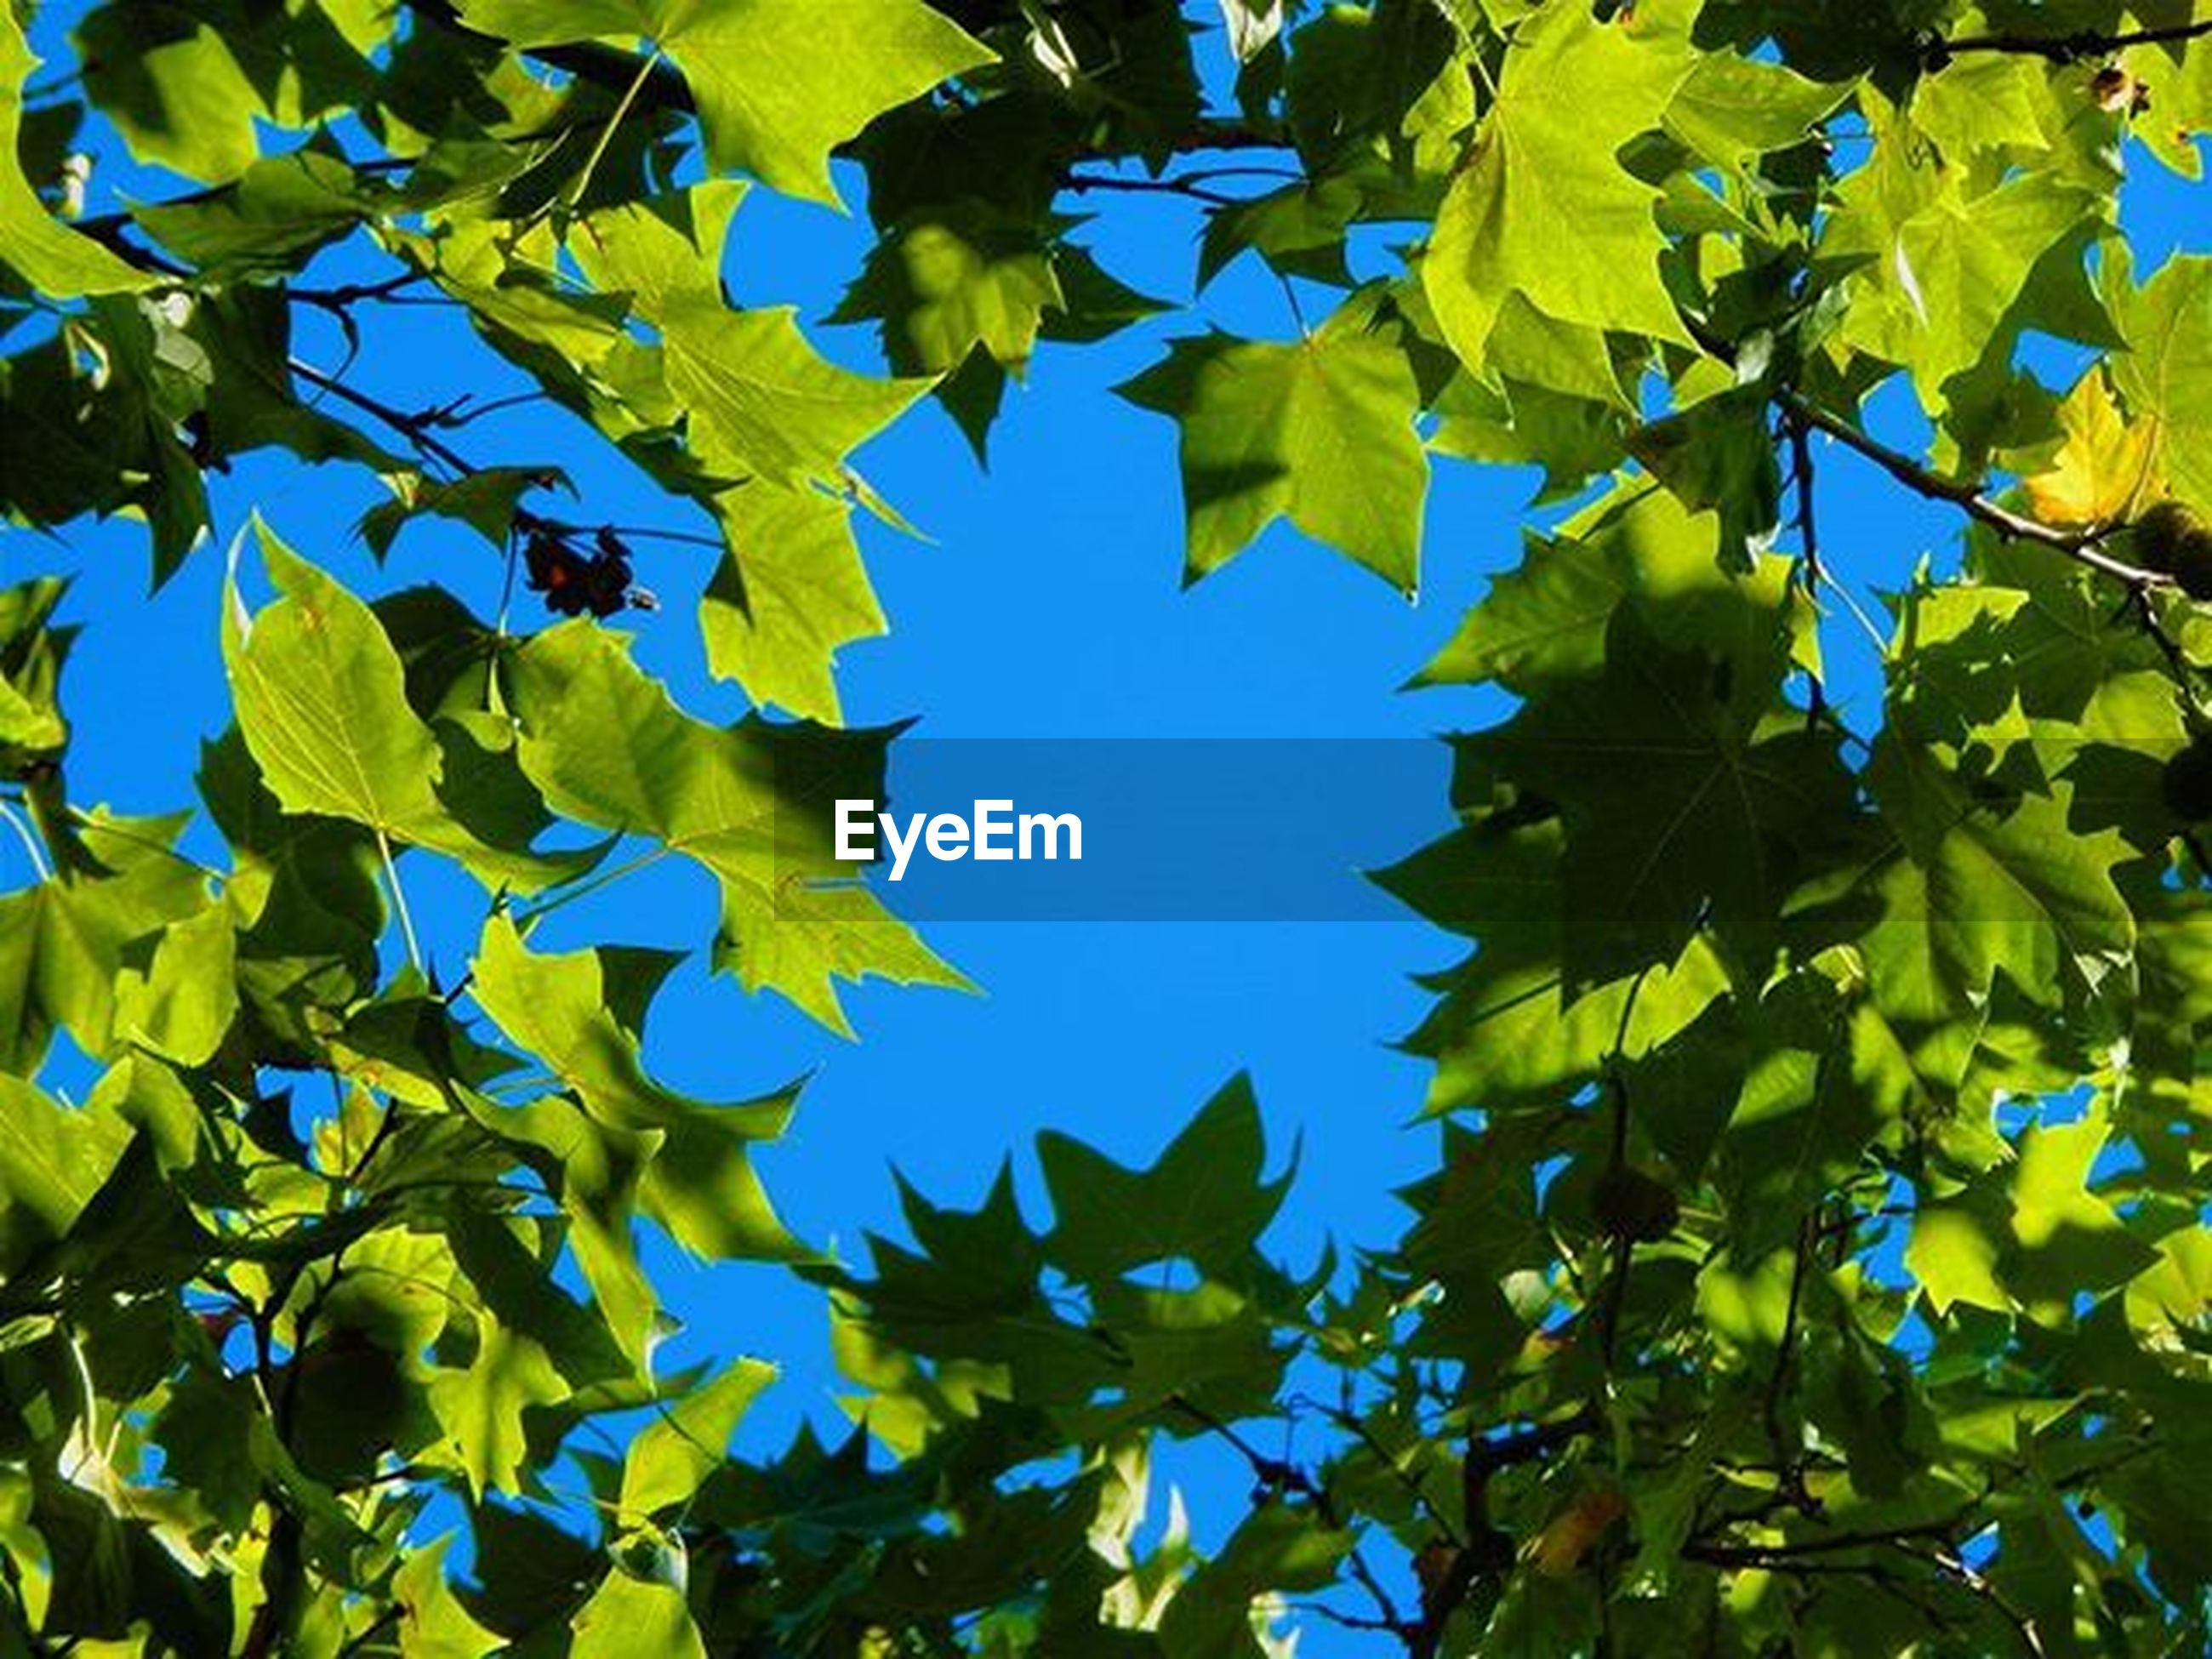 leaf, low angle view, growth, tree, blue, branch, green color, clear sky, nature, autumn, beauty in nature, leaves, yellow, sunlight, day, change, tranquility, outdoors, close-up, season